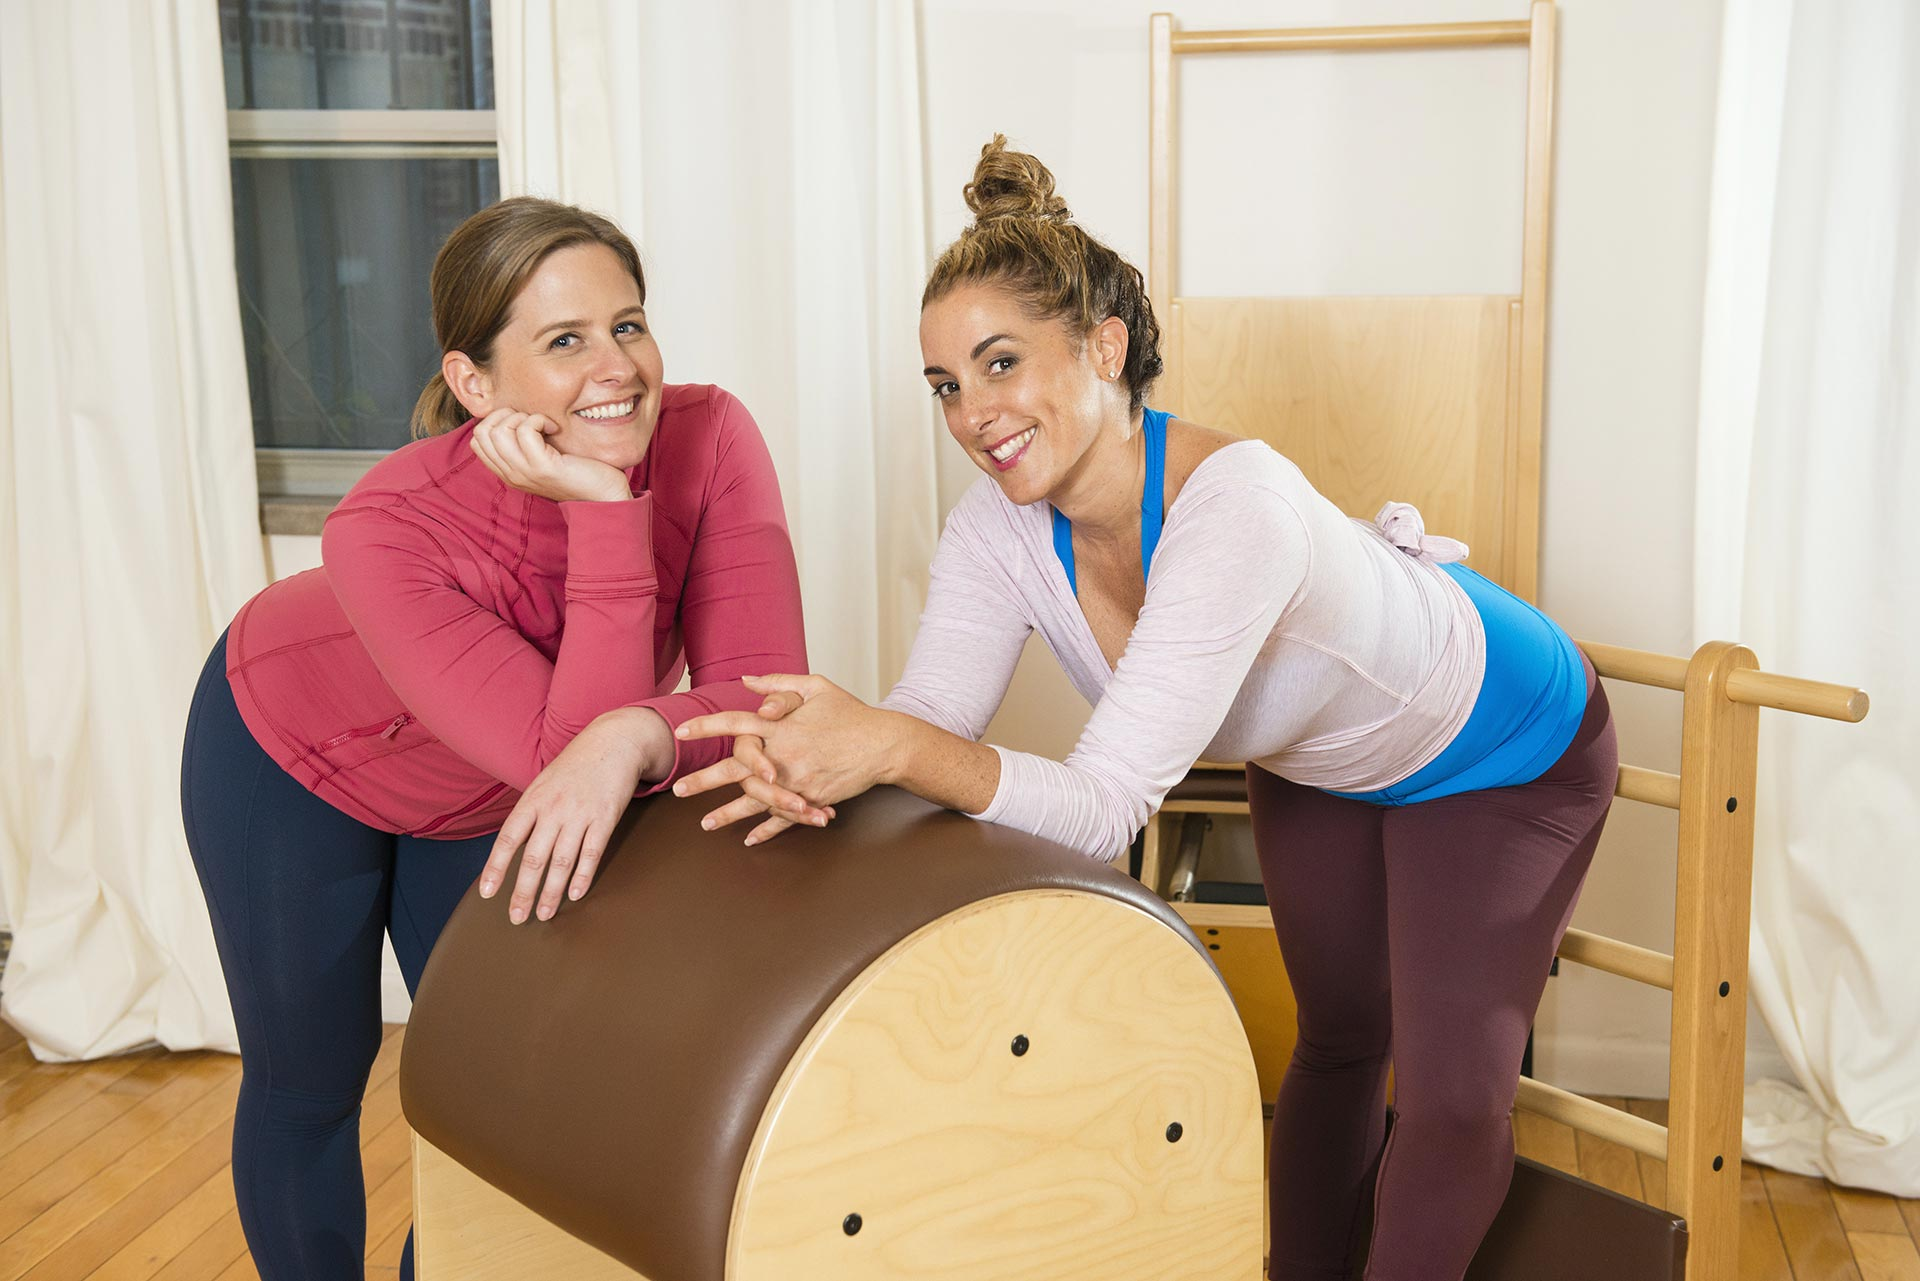 The Pilates Local Founders Michele Rinaldi and Kristin Hoesl